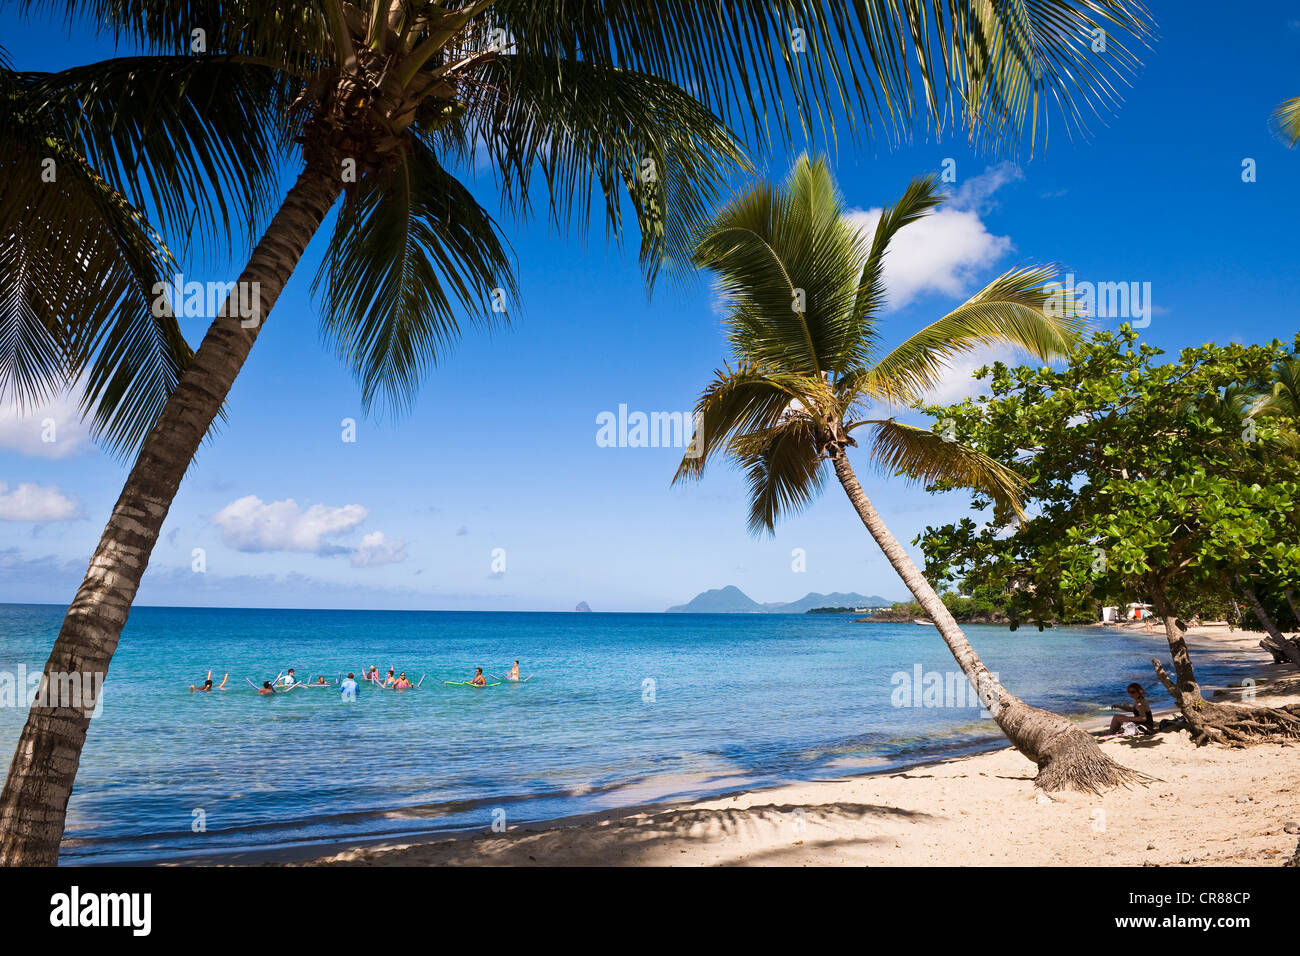 France, Martinique (French West Indies), Anse Figuier, the beach Stock Photo